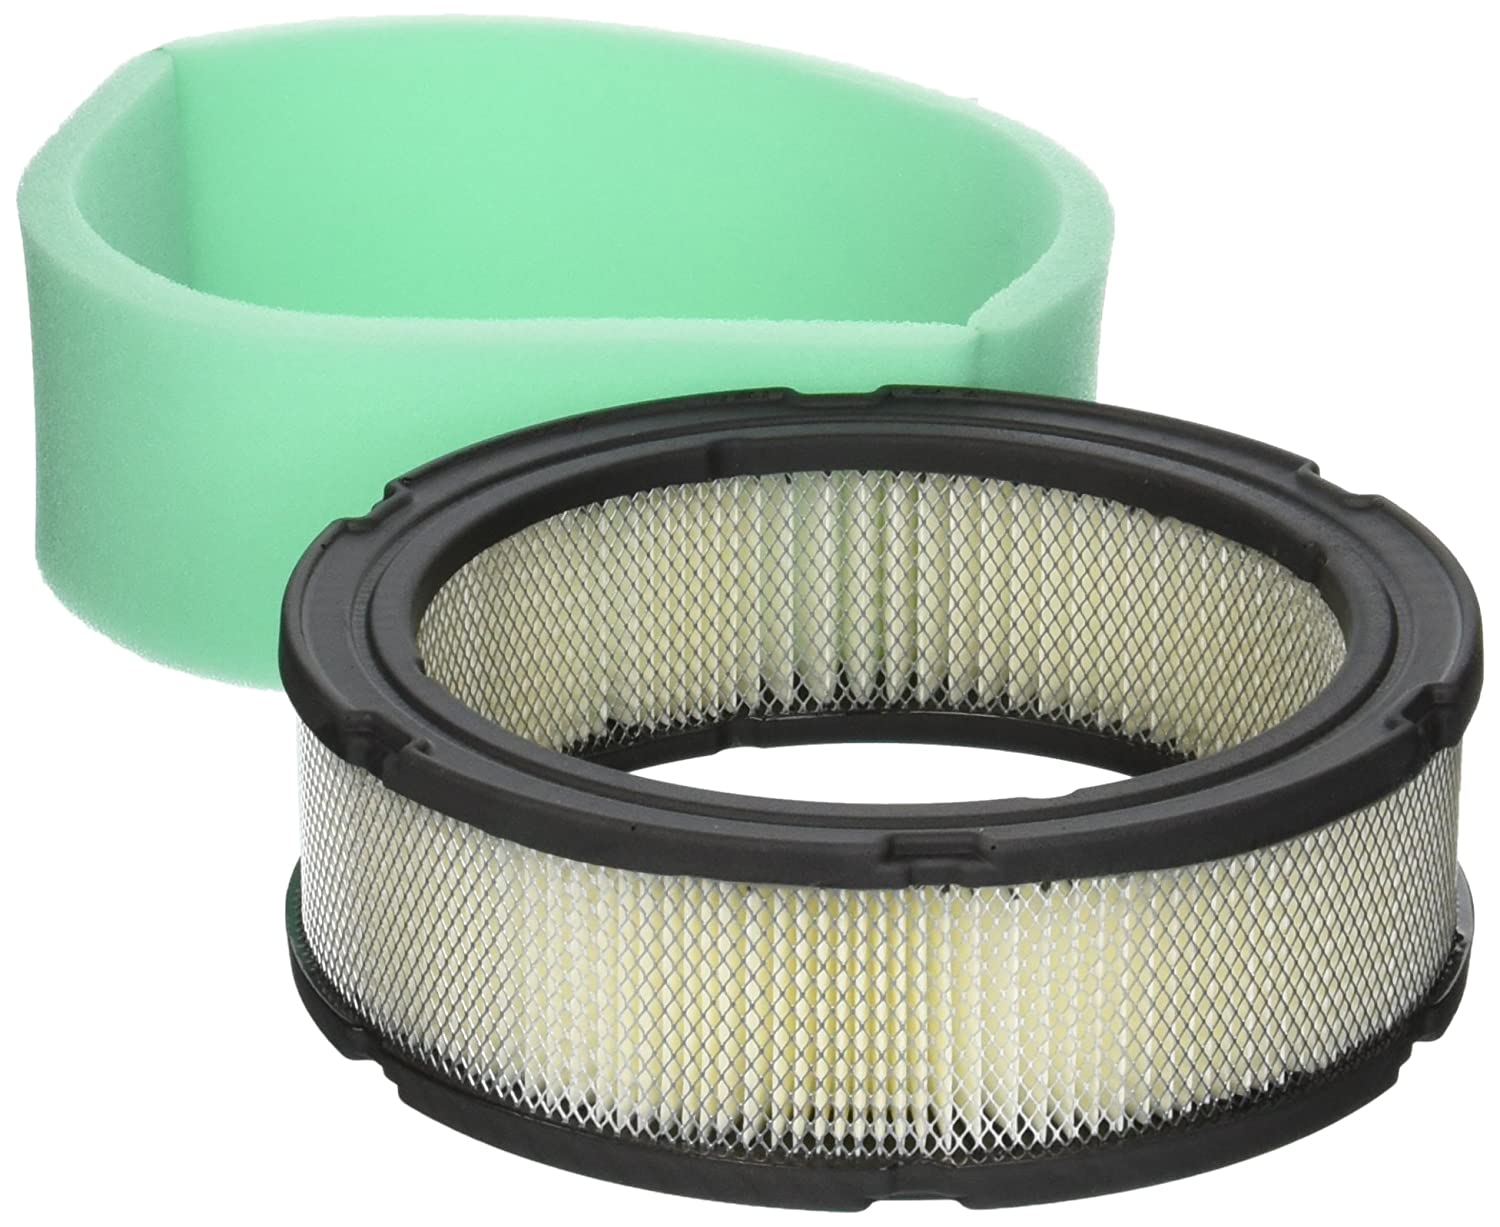 Briggs & Stratton Air Filter Cartridge/Pre-Cleaner 12.5 - 20 HP 5050K